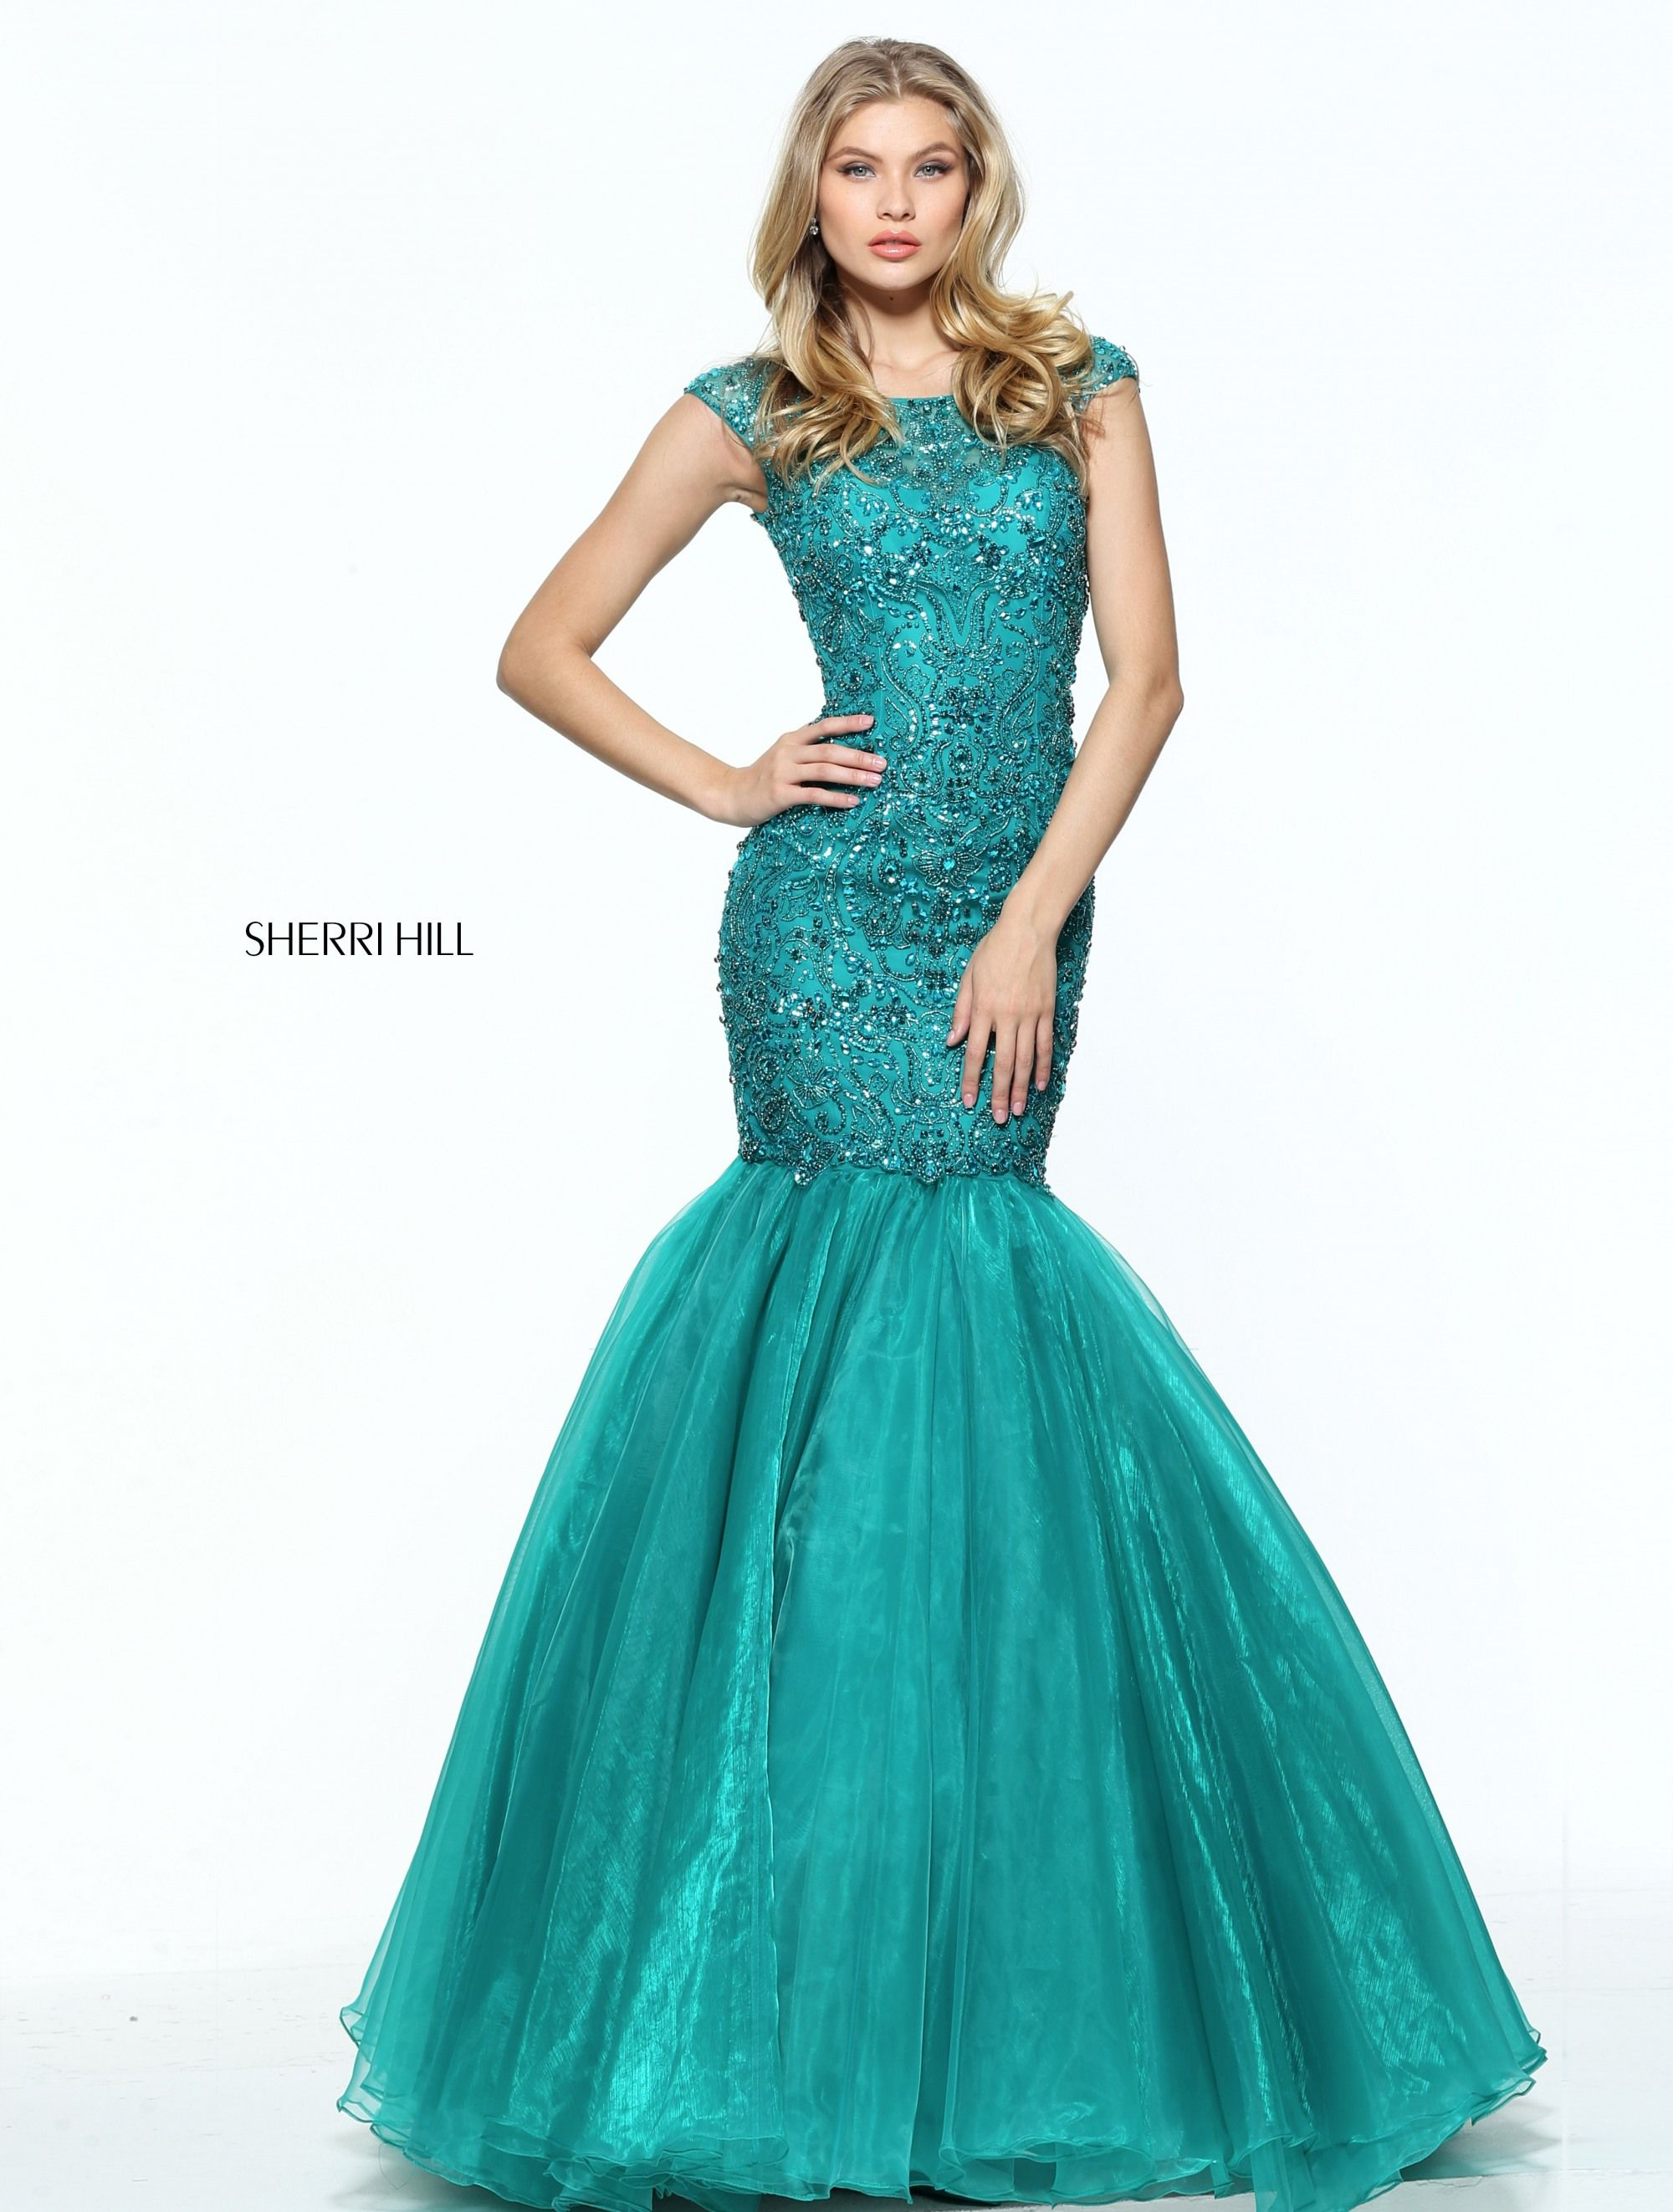 Sherri Hill 50955 | Prom, Sherri hill prom dresses and Prom dress stores